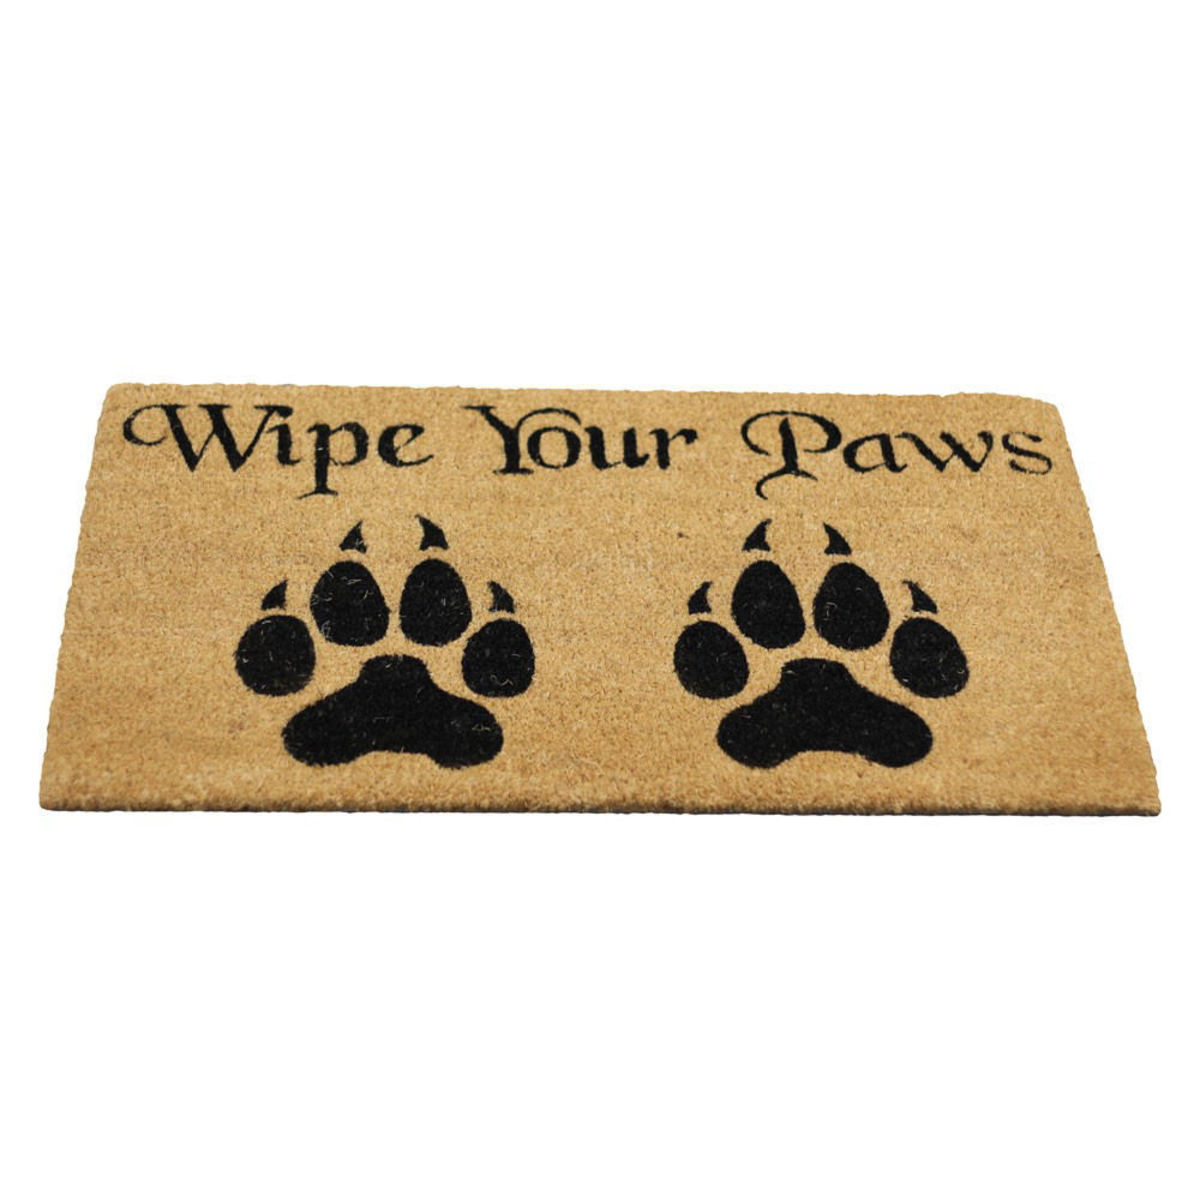 rohožka Wipe Your Paws - B2741G6